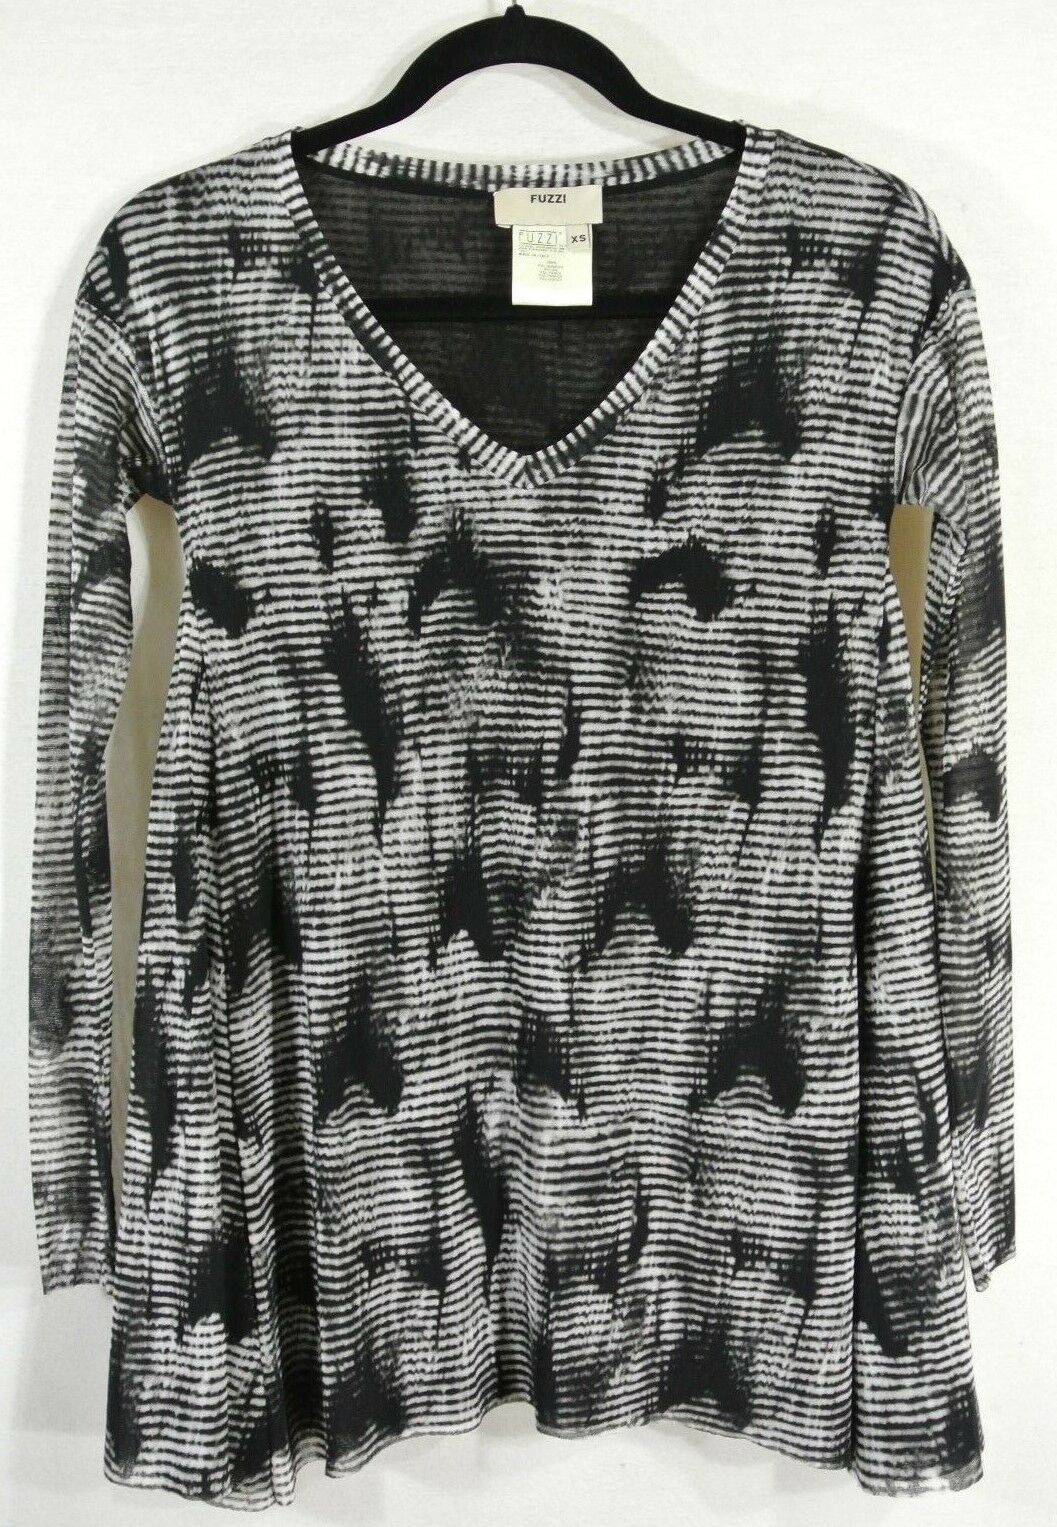 NEW Fuzzi Printed Long Sleeve Top in Smoke - Größe XS  T116